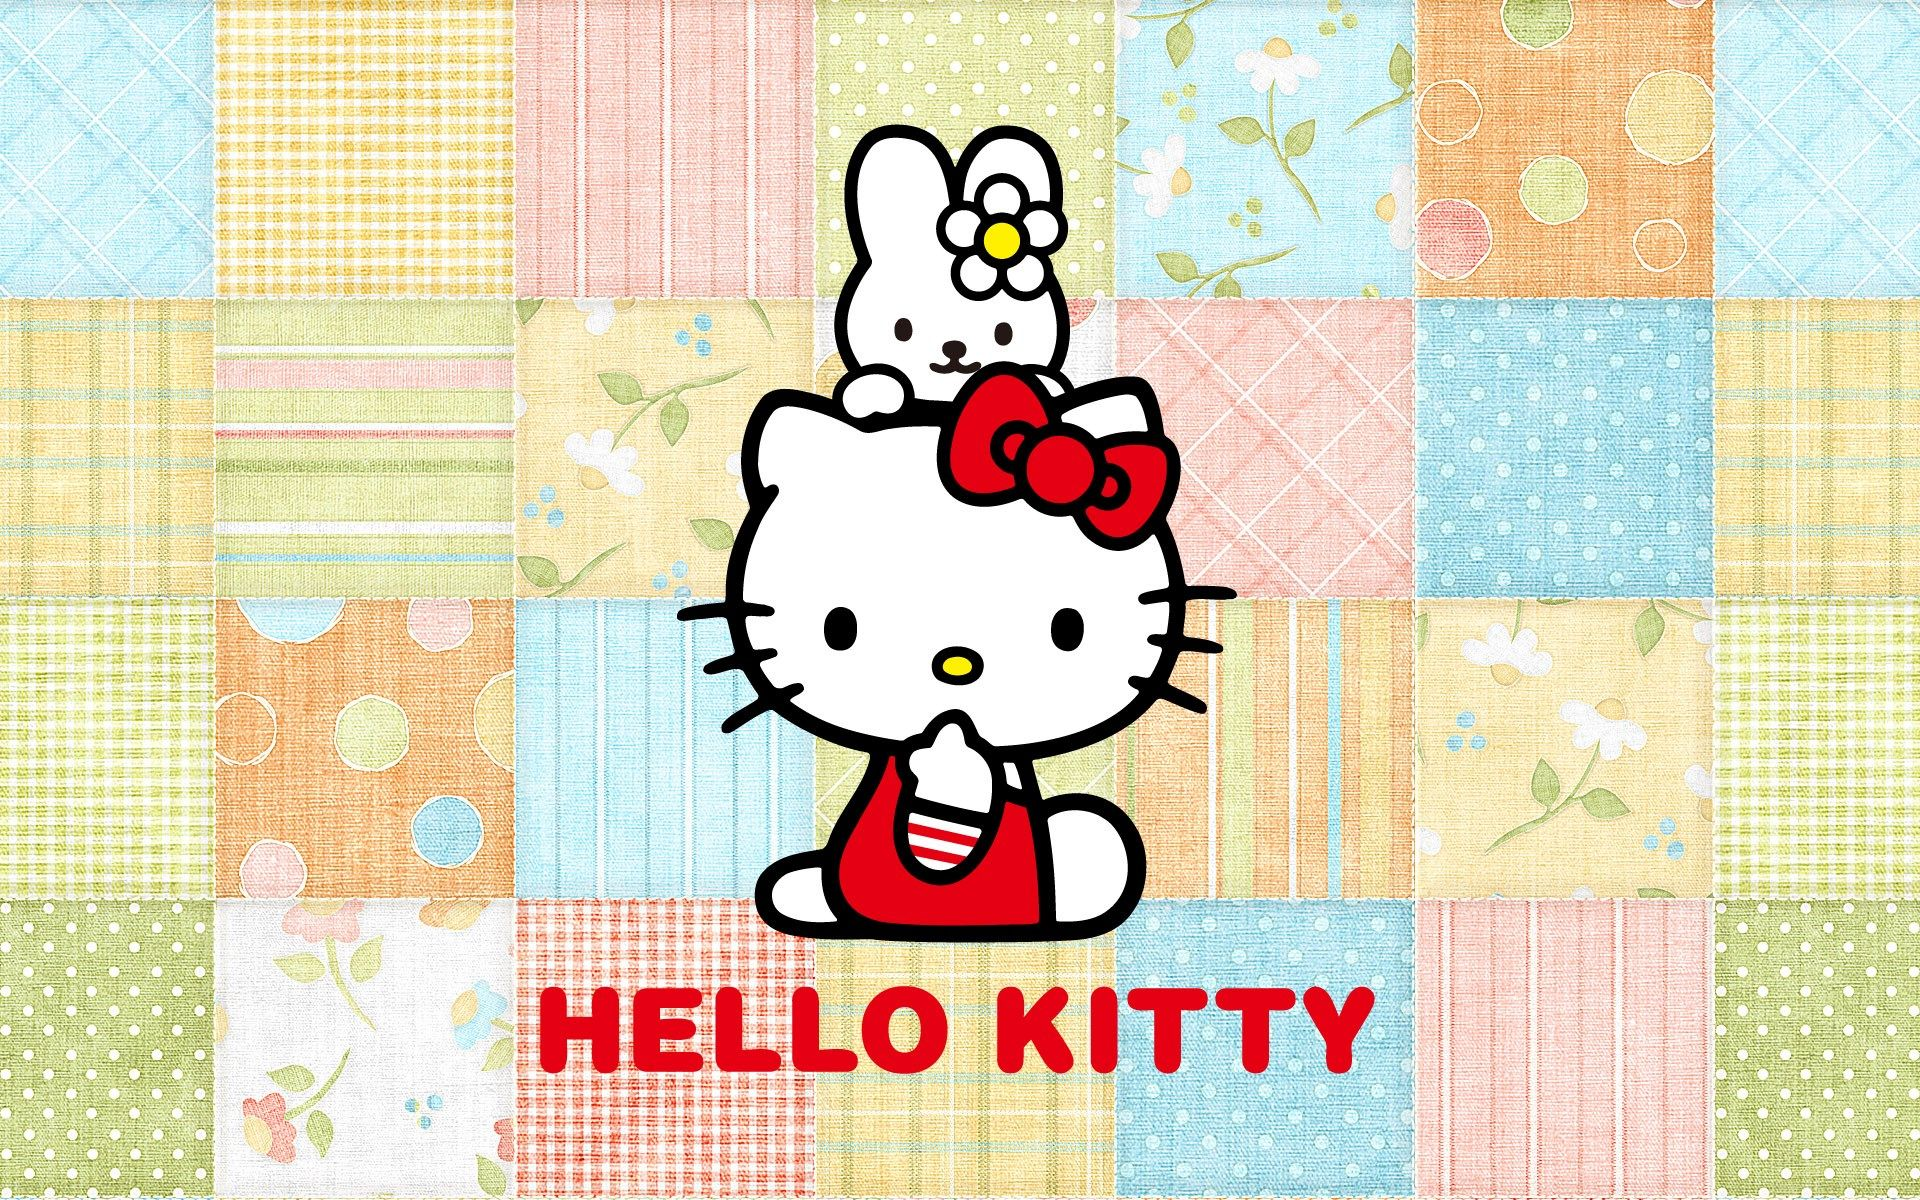 Great Wallpaper Hello Kitty Laptop - ca5728e81babc66f4b744fafbcd2d7e3  Perfect Image Reference_494645.jpg